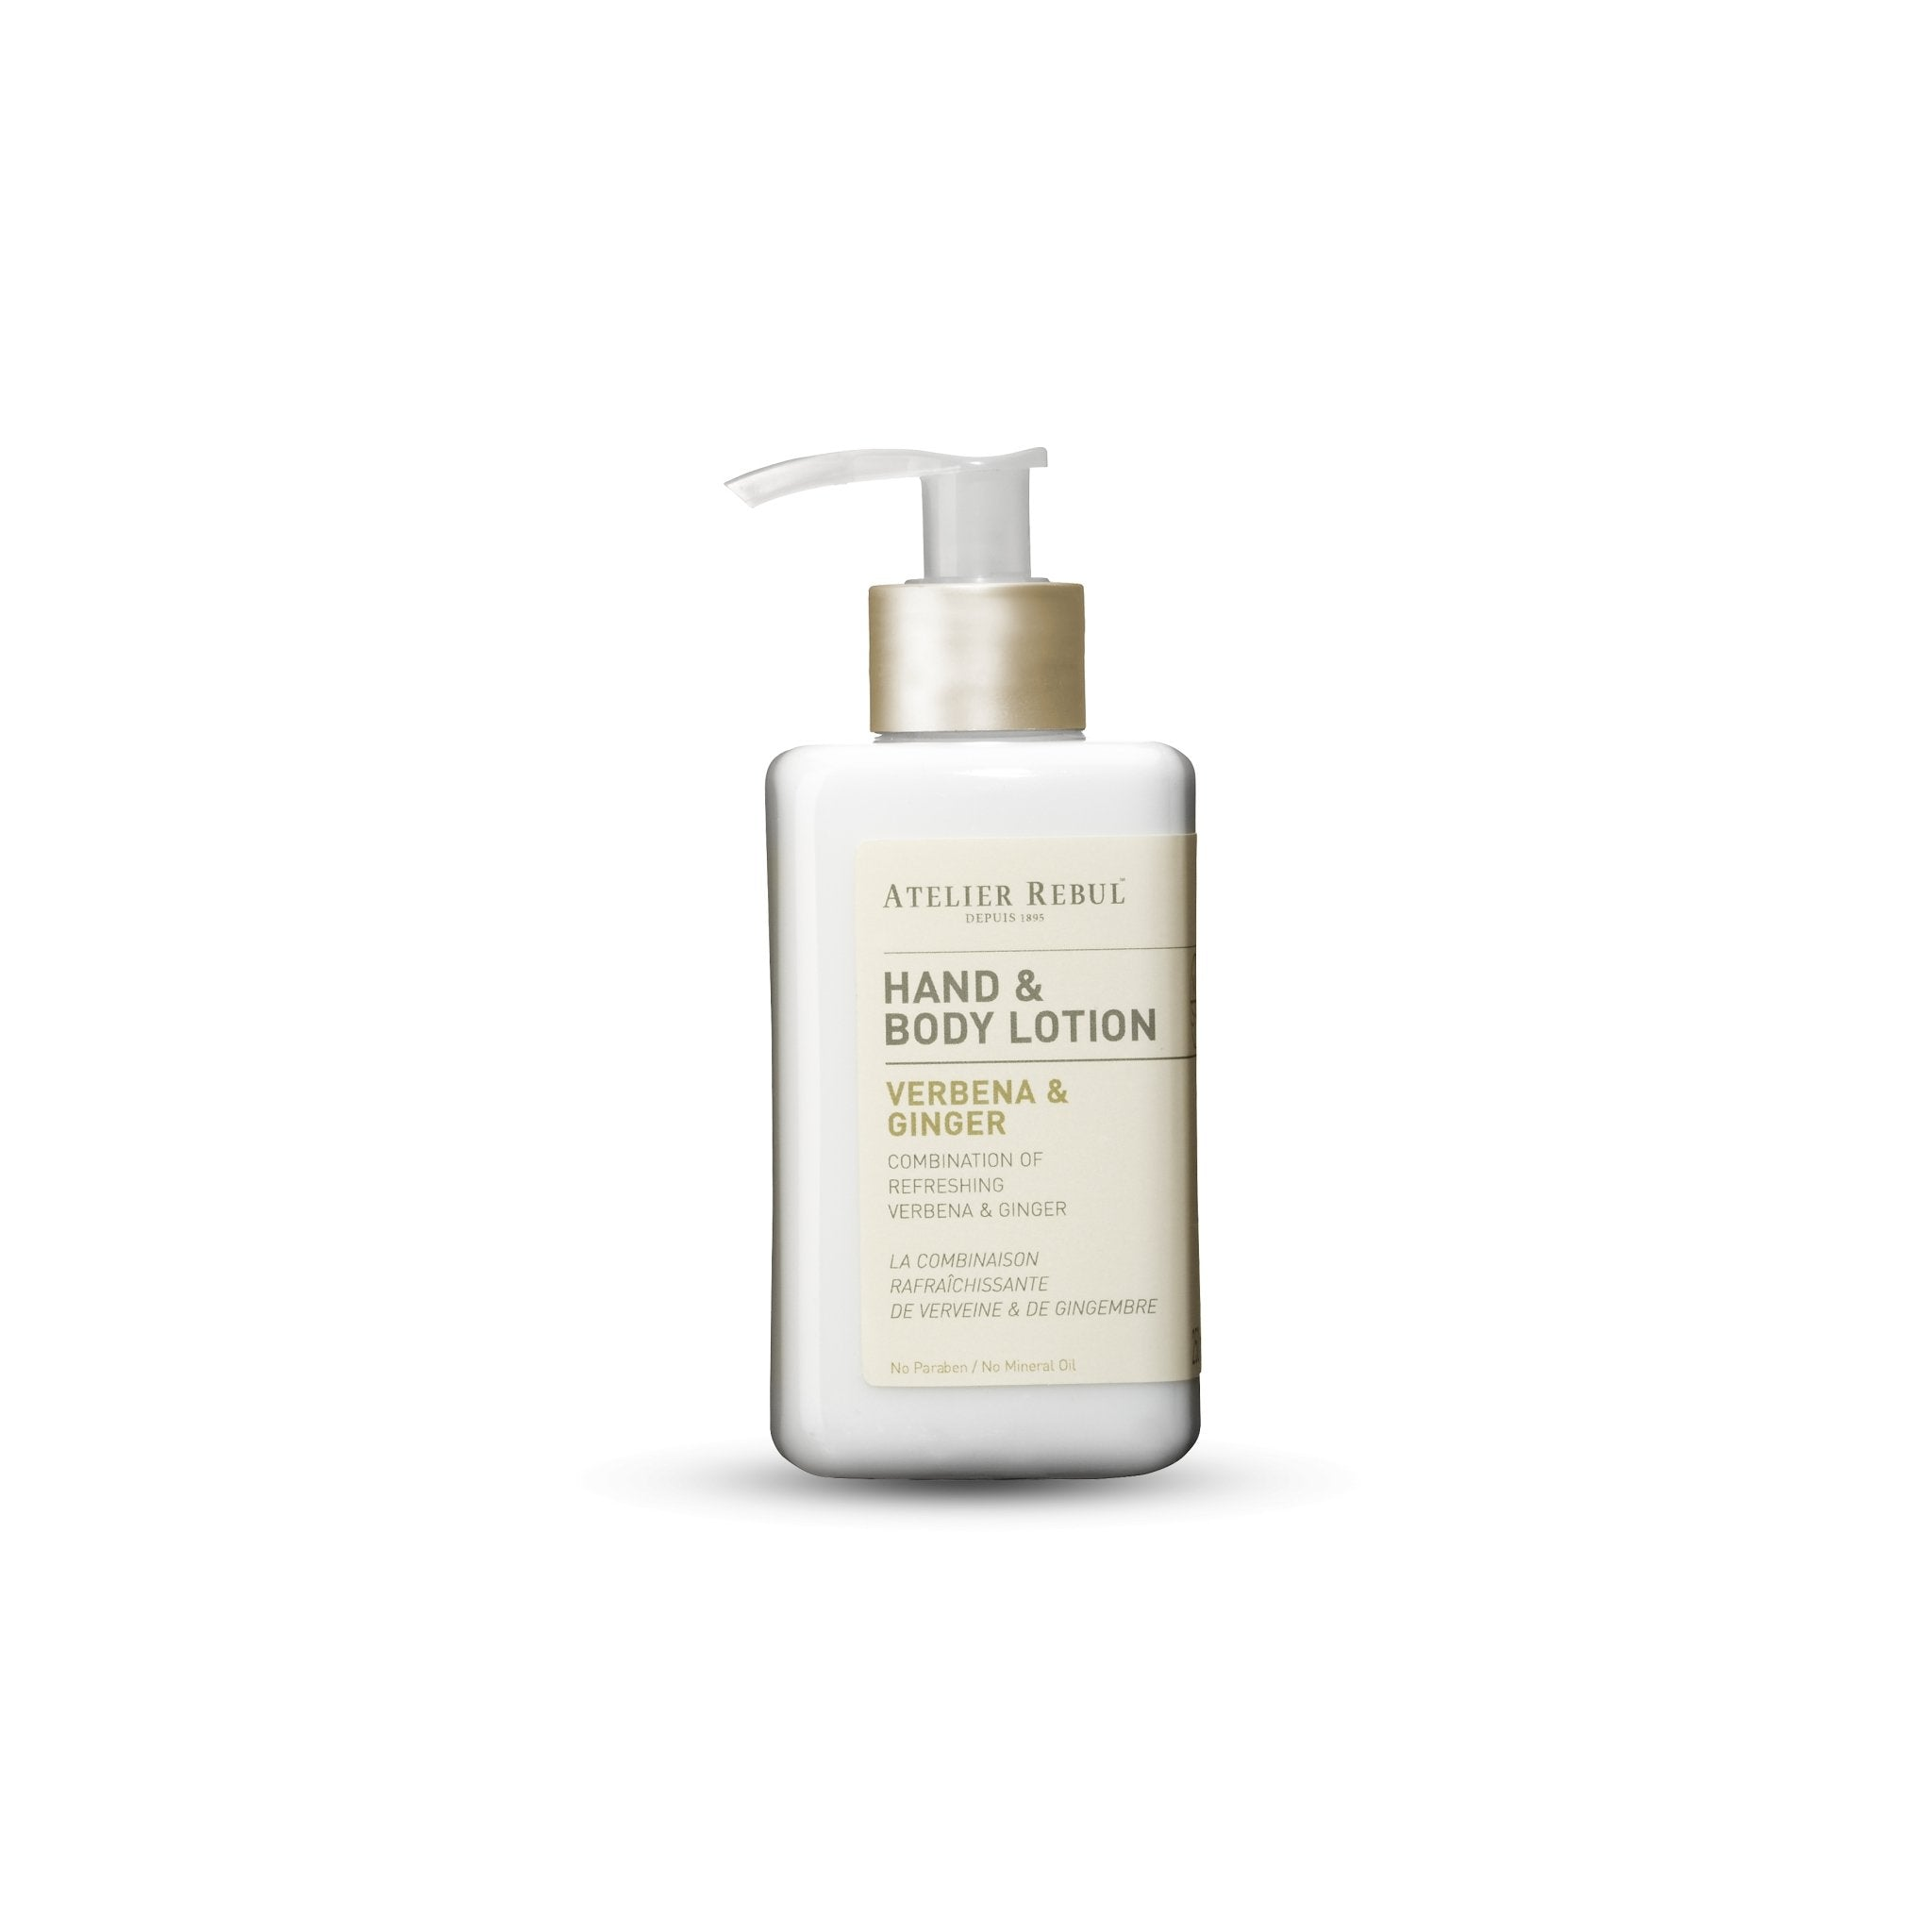 ATELIER REBUL -HAND & BODY LOTION / VERBENA & GINGER- 250ML